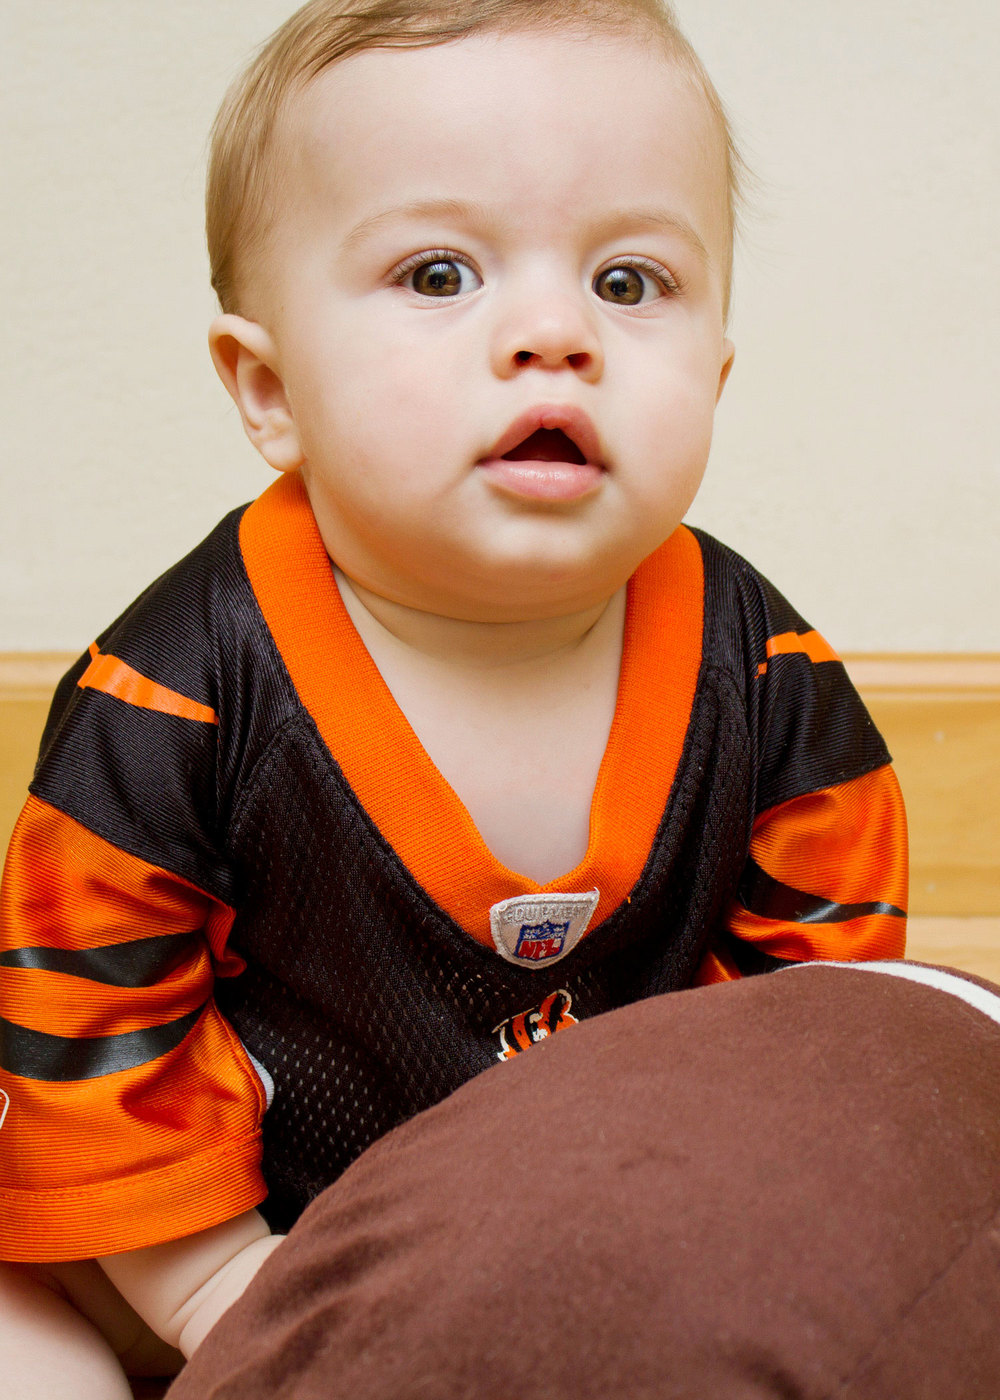 Baby Football Portrait